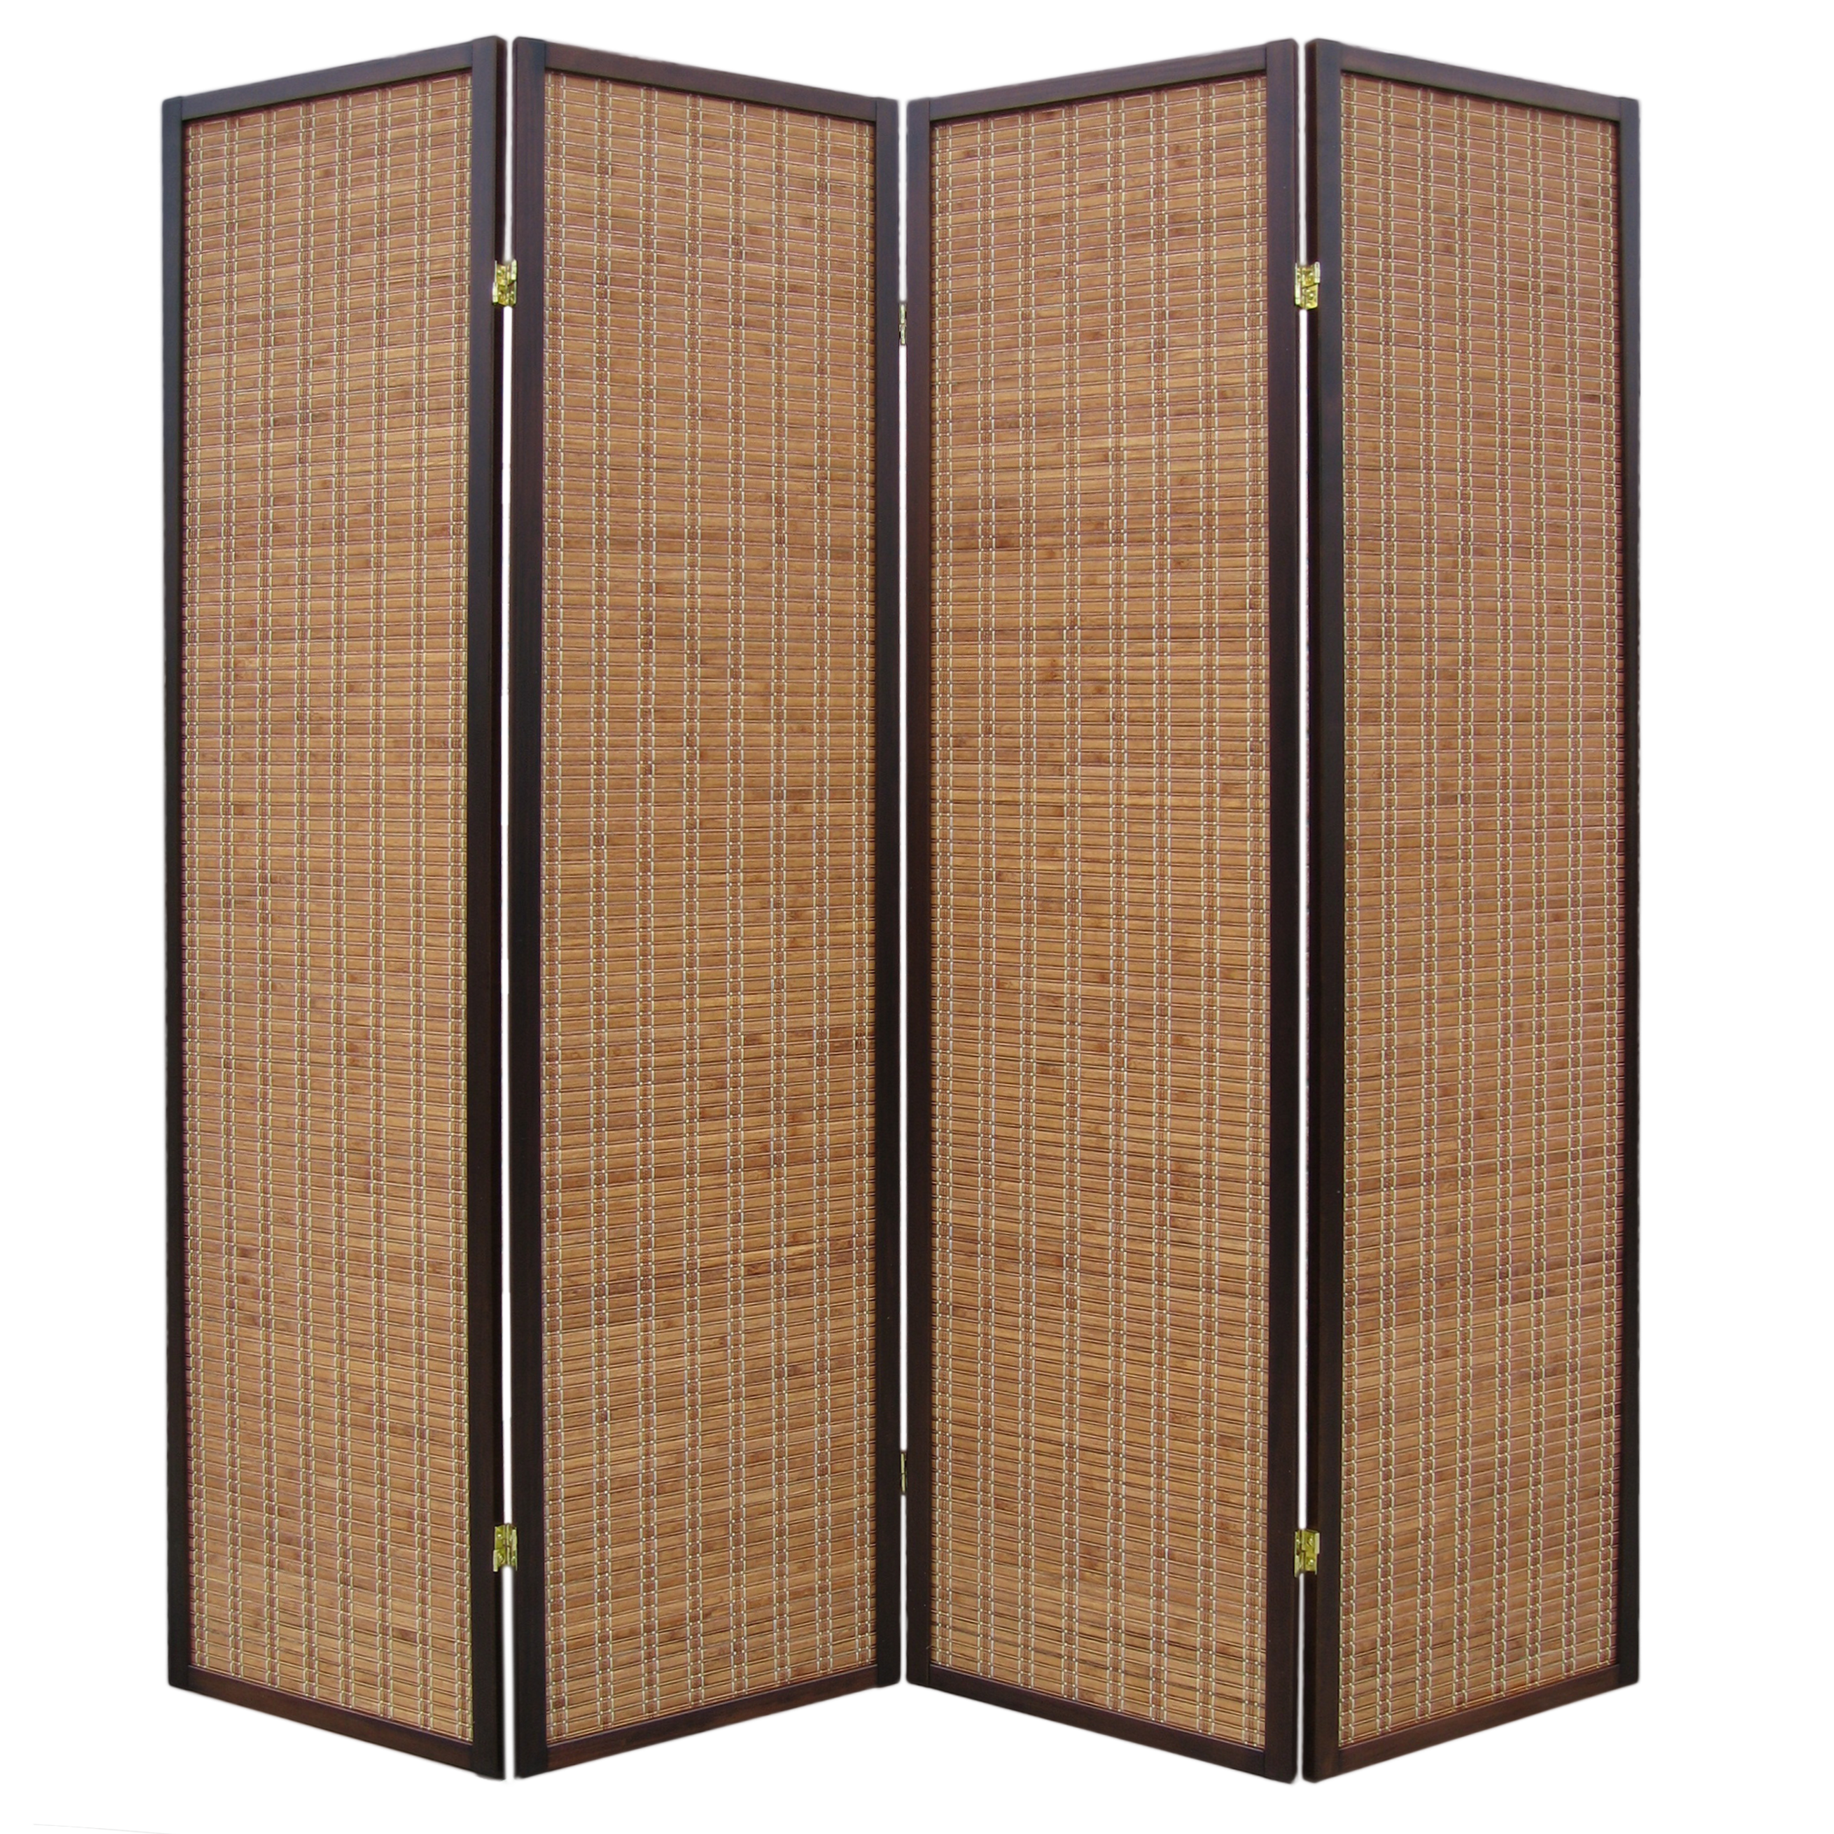 Kobe Walnut Panel Room Divider Or Screen The Original Screen - 4 panel room divider